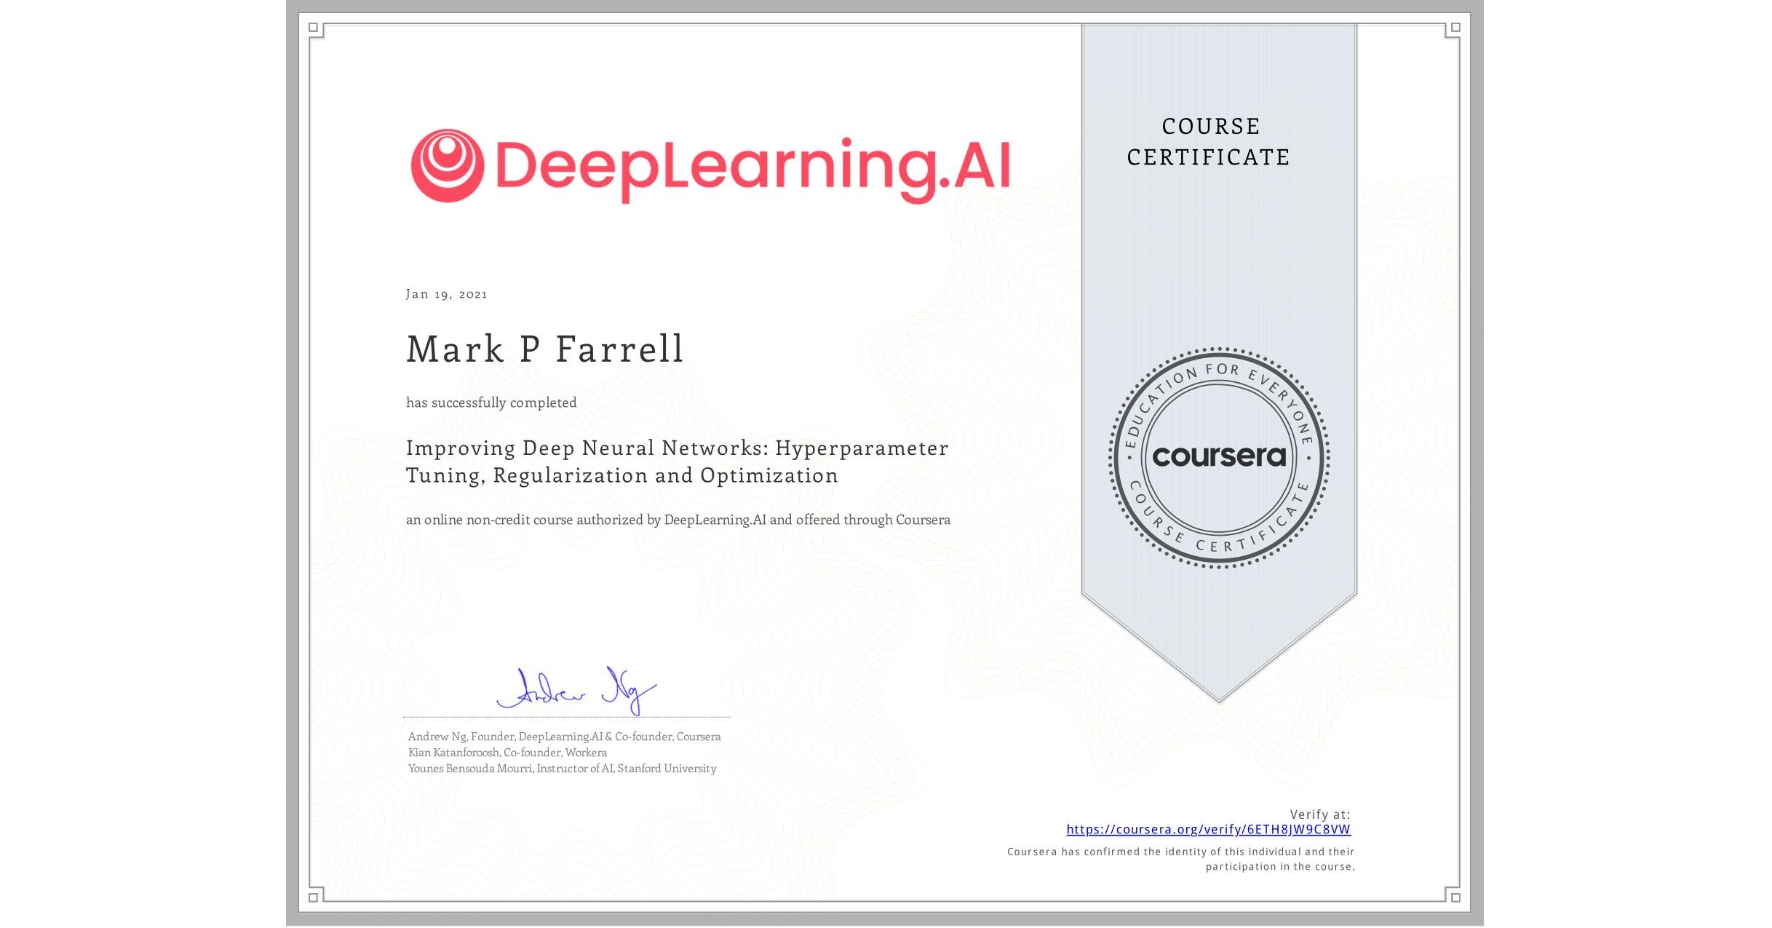 View certificate for Mark P Farrell, Improving Deep Neural Networks: Hyperparameter Tuning, Regularization and Optimization, an online non-credit course authorized by DeepLearning.AI and offered through Coursera